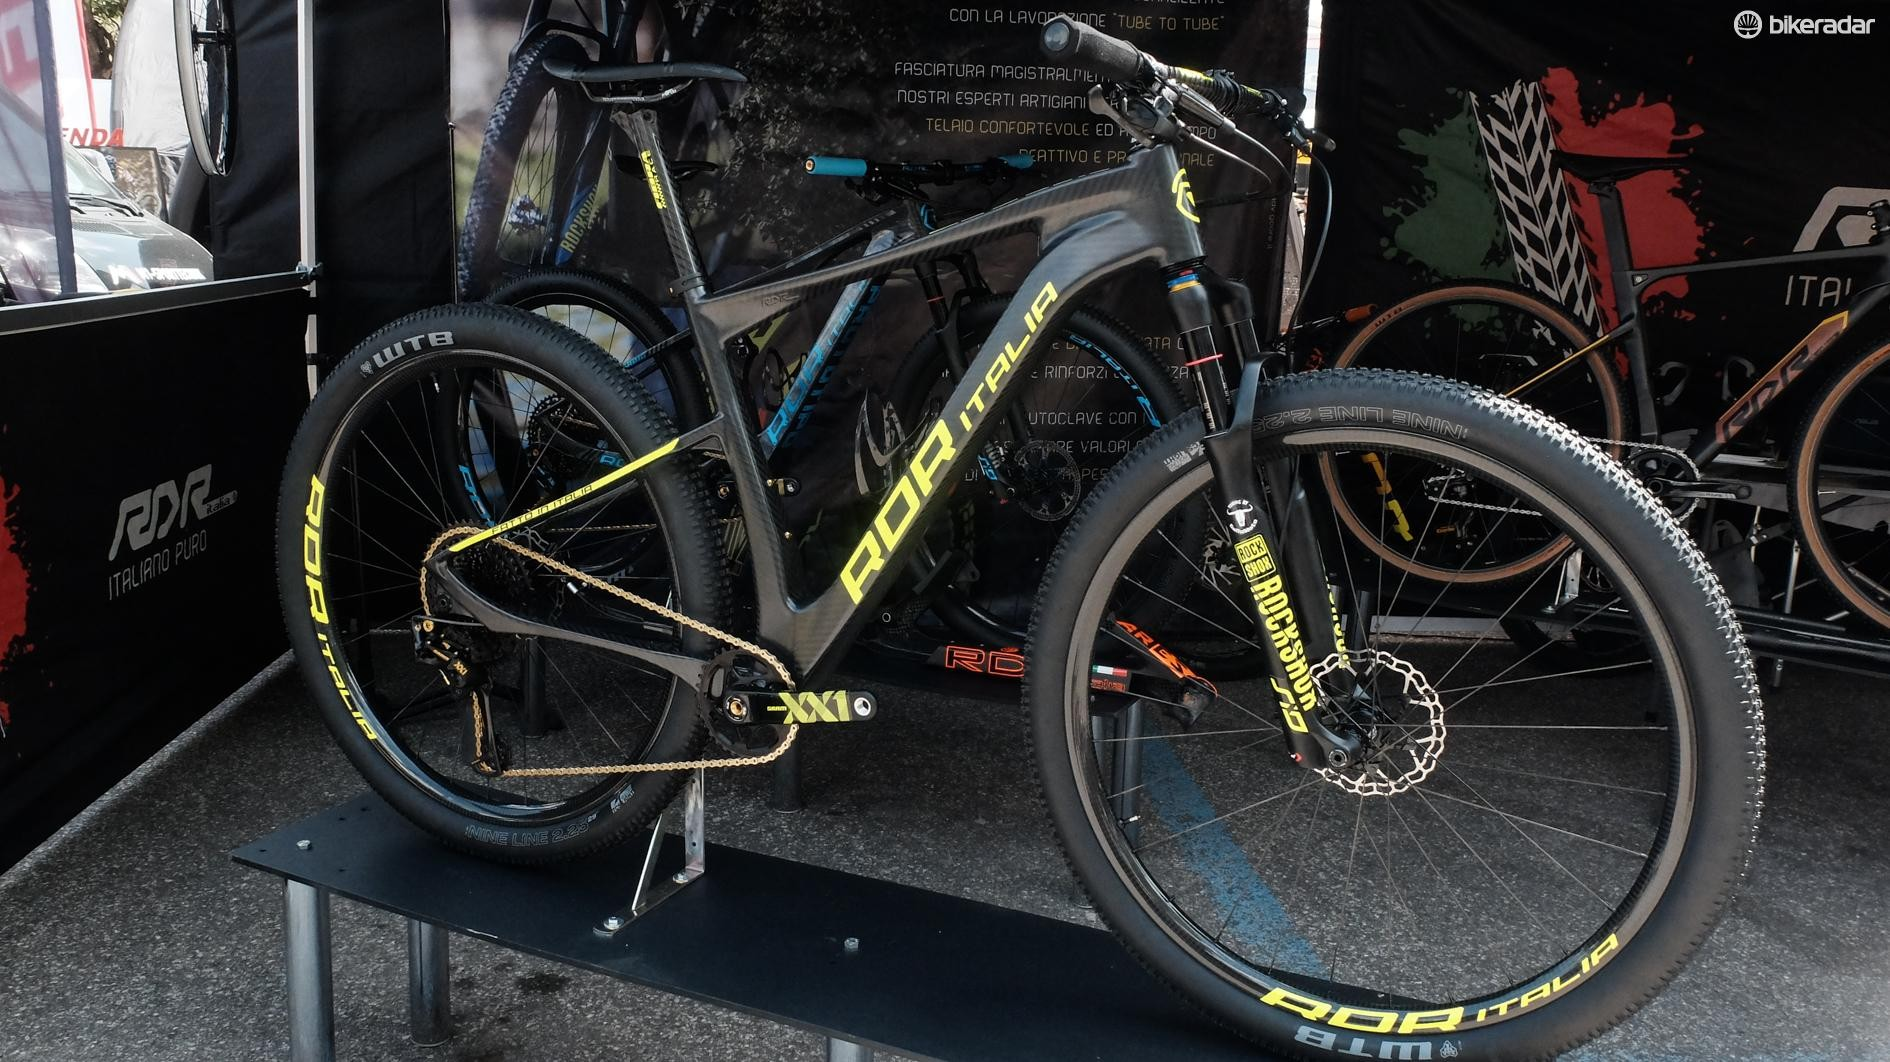 The brand also produces hardtails...